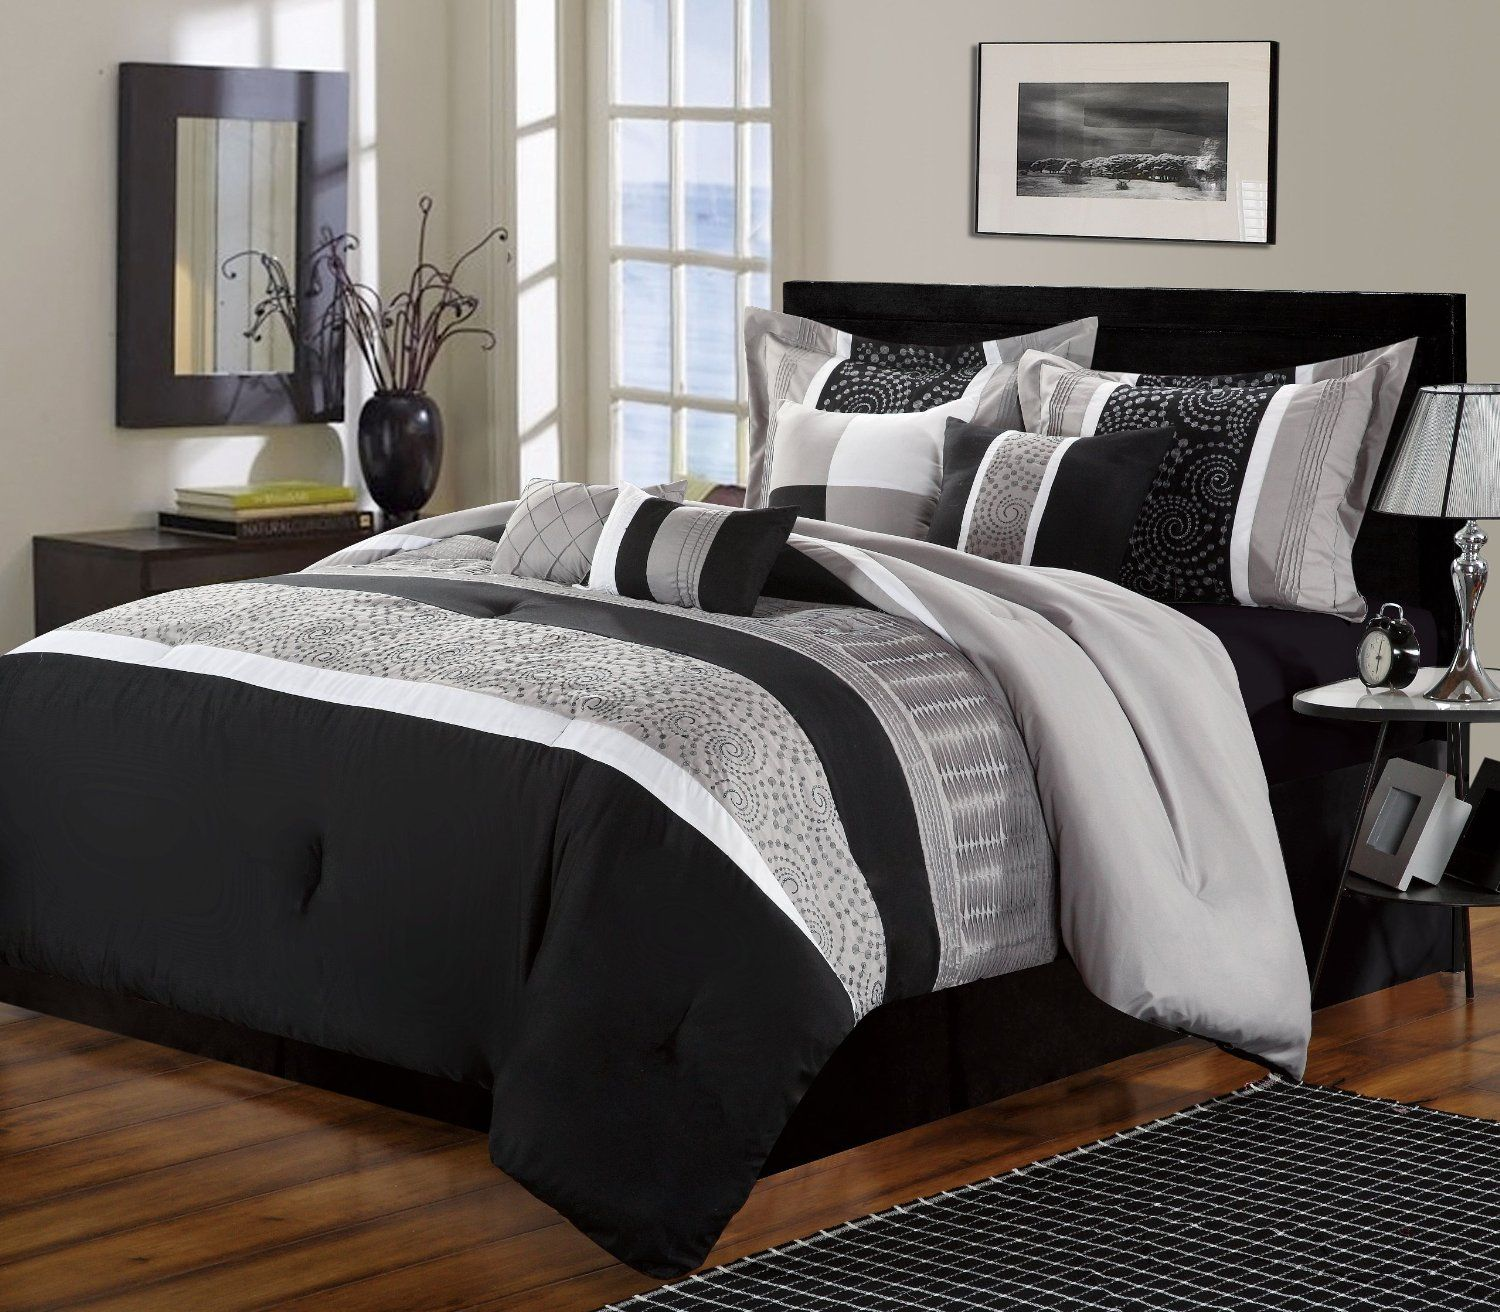 The modern comforters and bedspreads are very easy in use